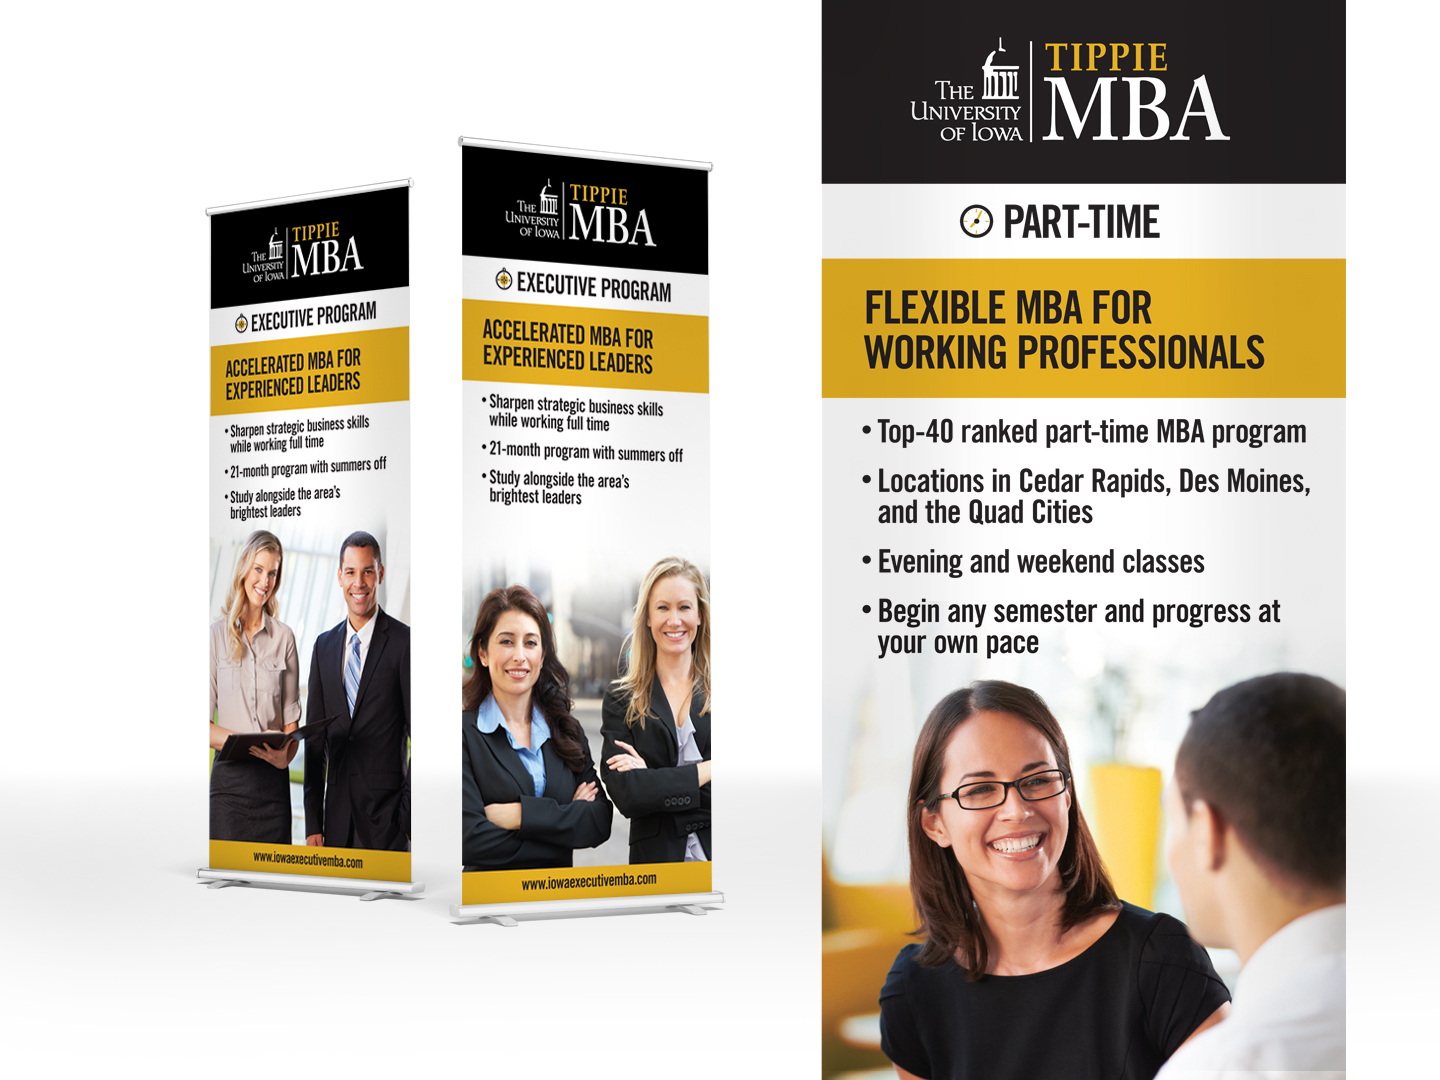 University of Iowa Tippie Campaign MBA